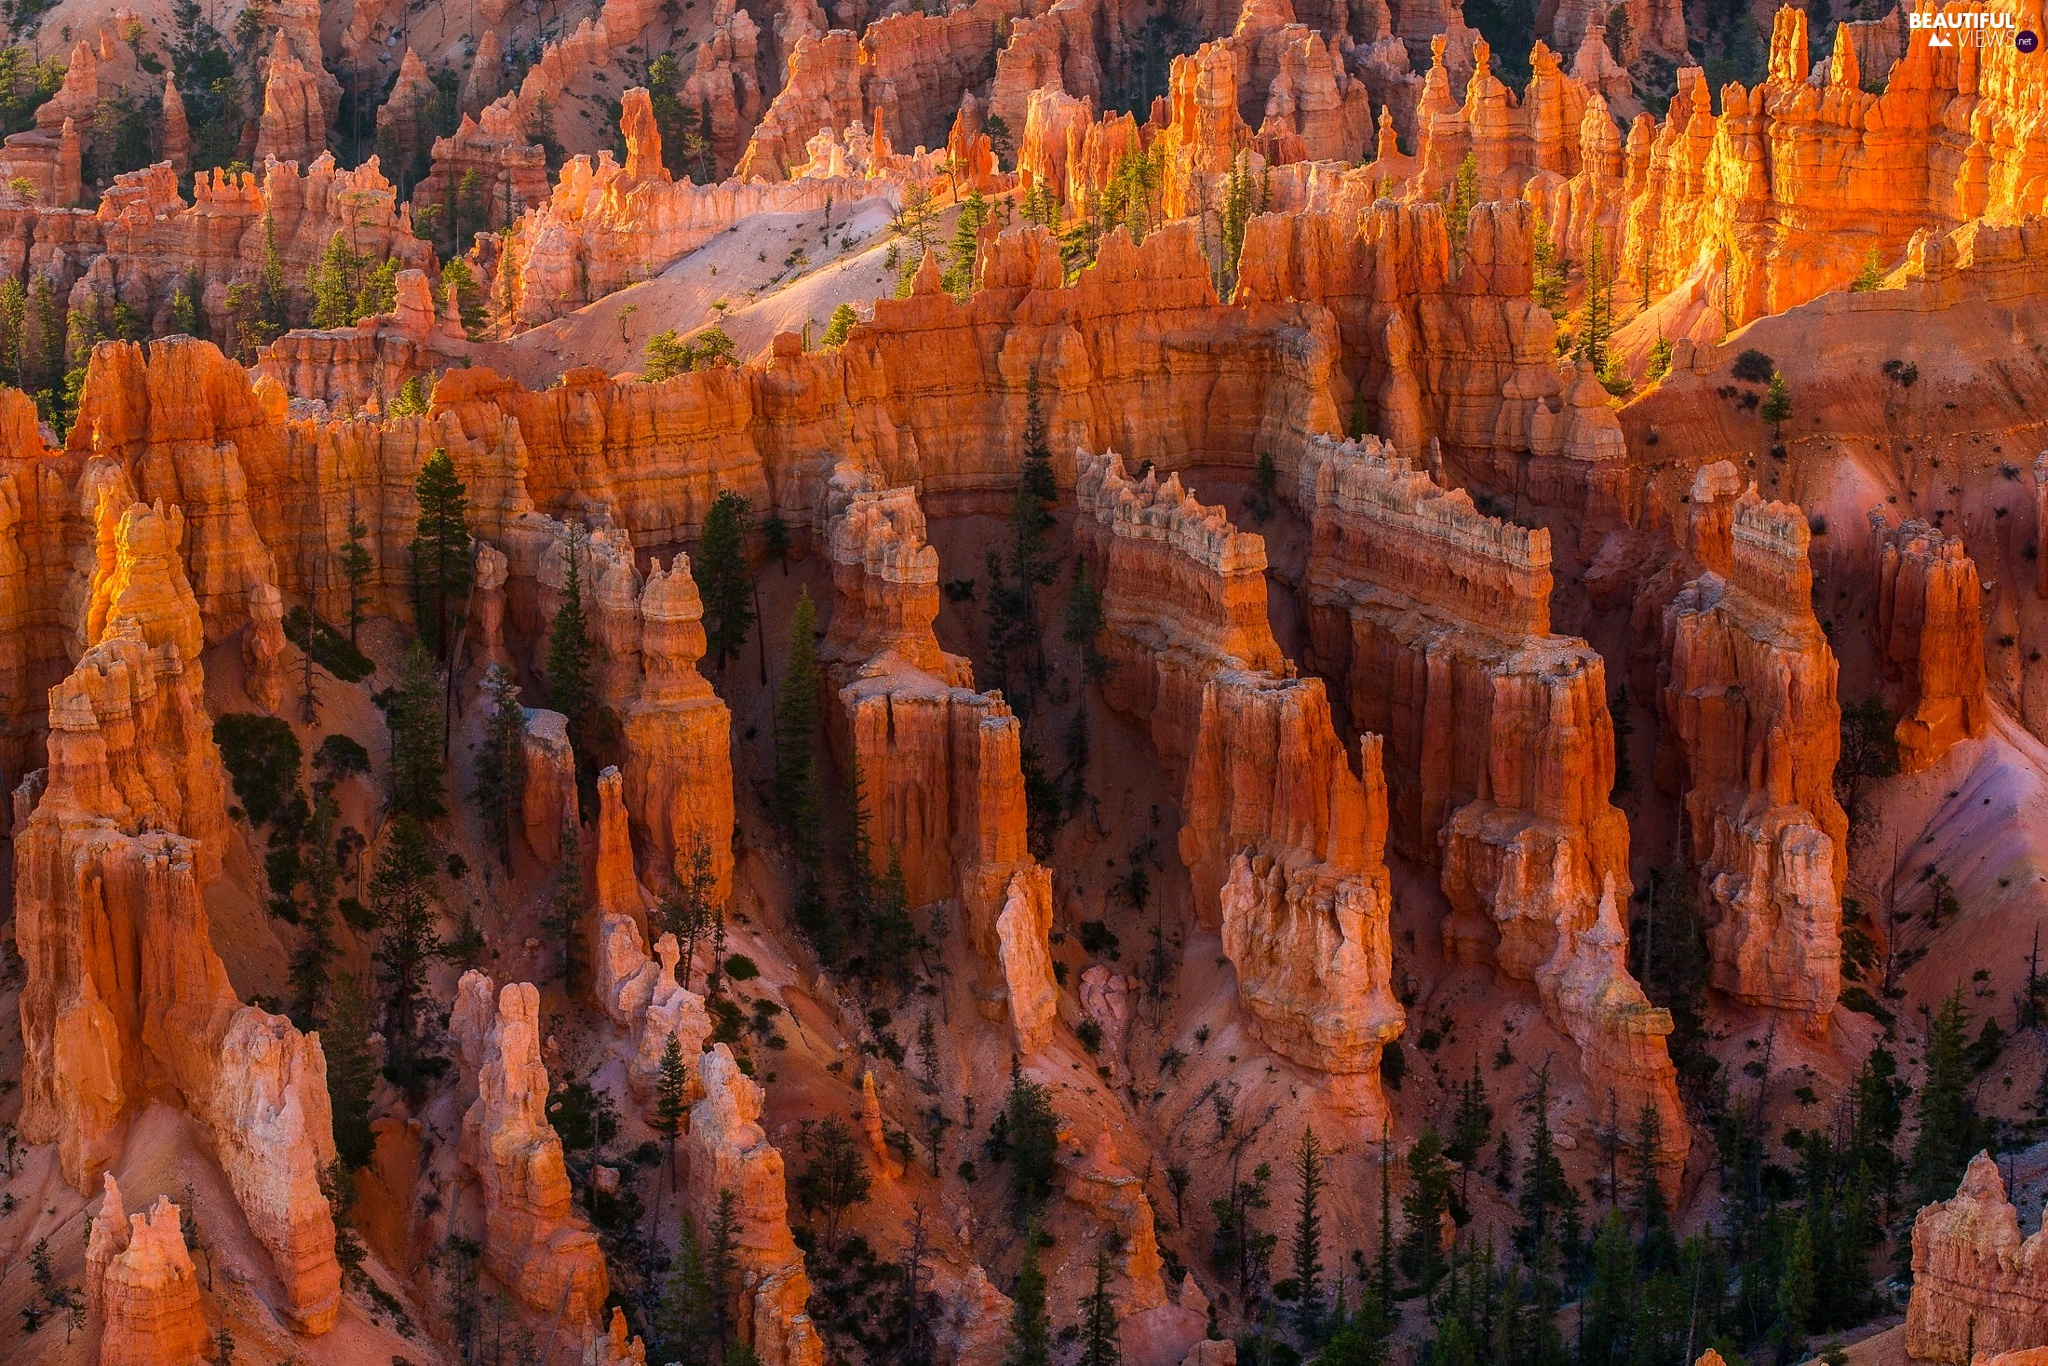 Bryce Canyon National Park, The United States, trees, viewes, canyon, Utah State